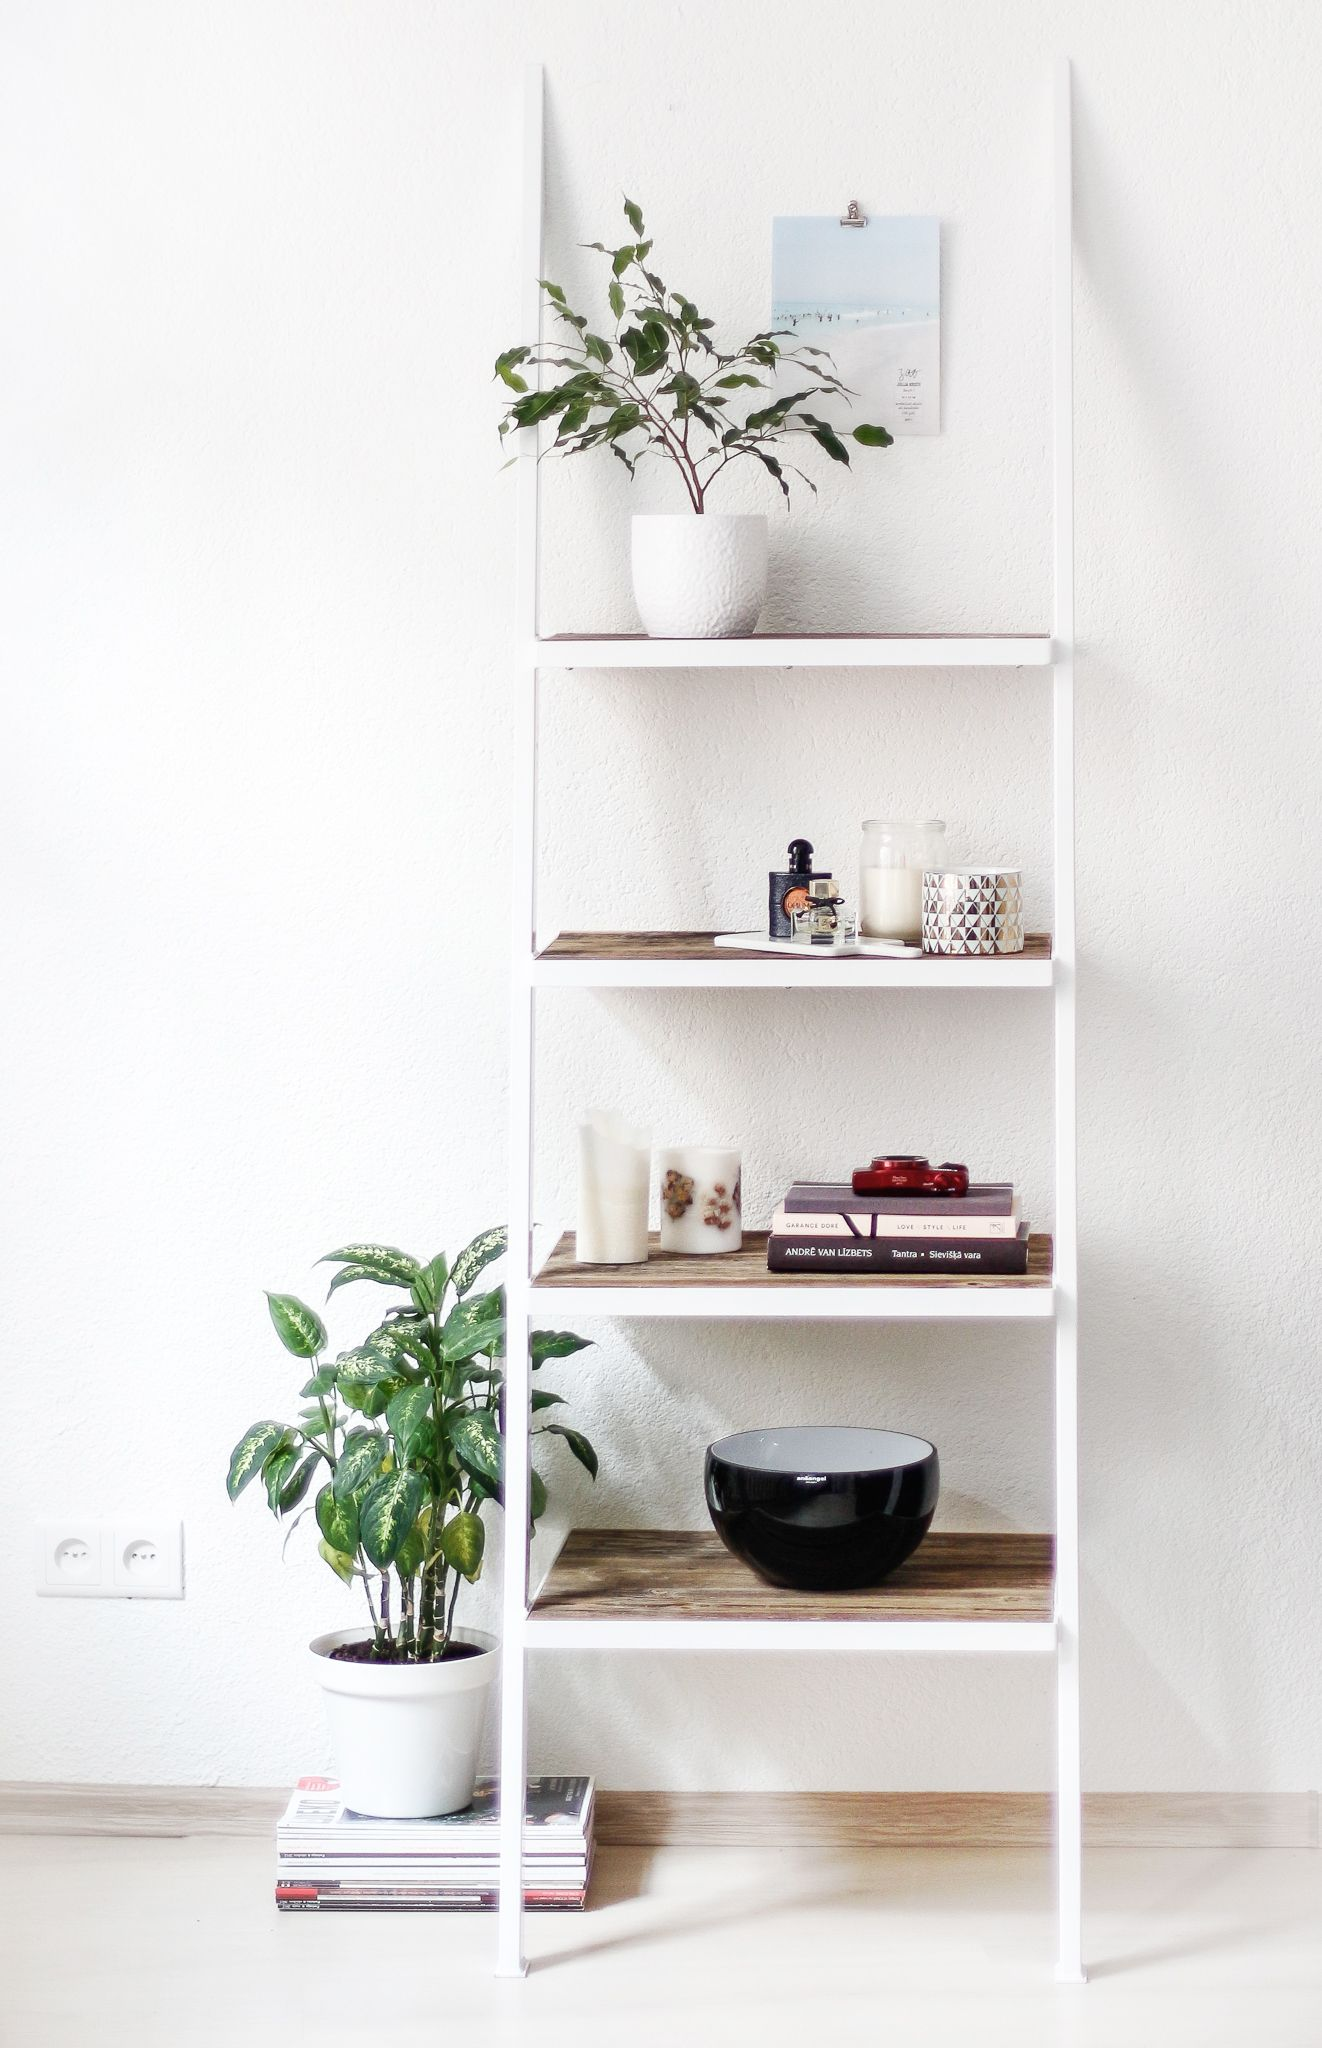 BEST OF THE NEST AUGUST FEATURES Ikea wall shelves, Ikea